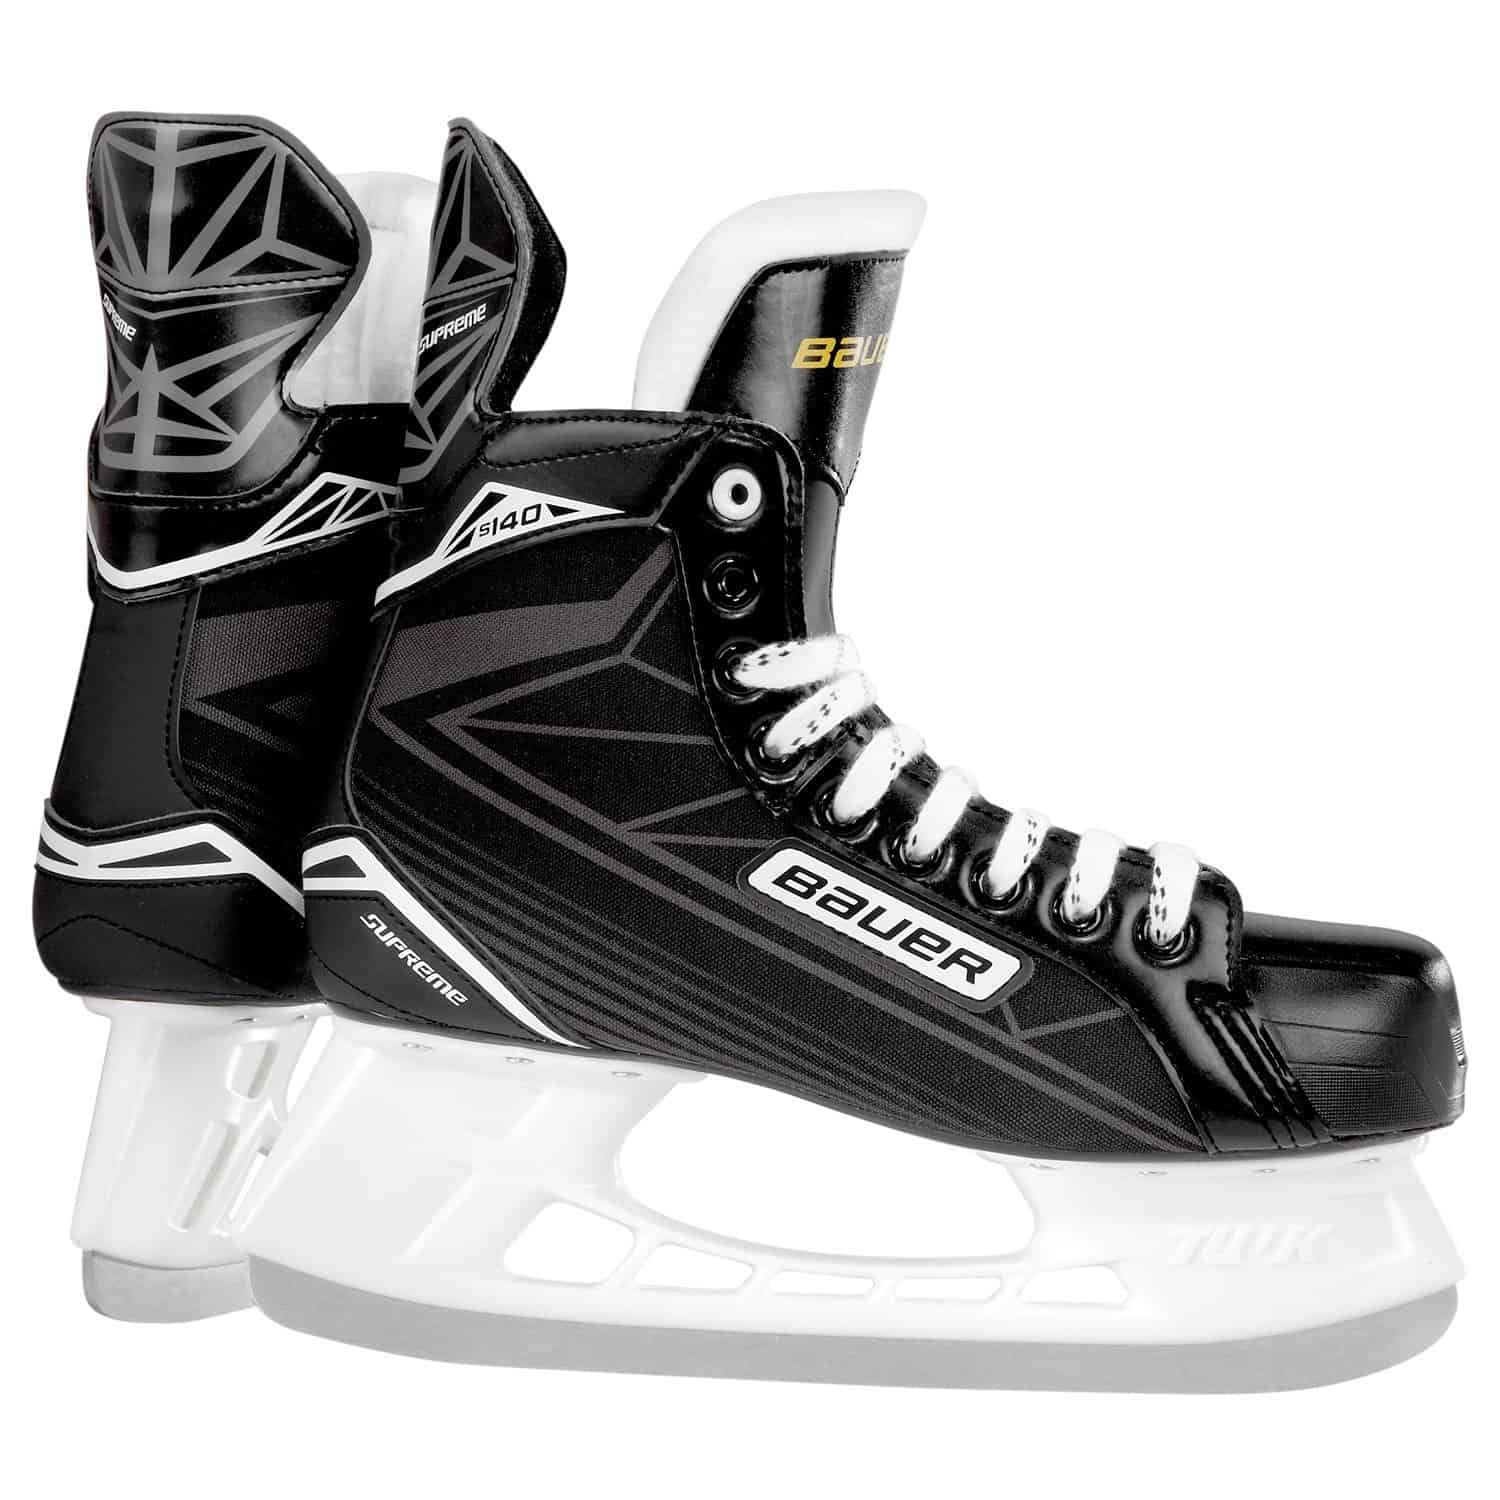 Bauer Supreme S140 Senior Hockey Skate 6(